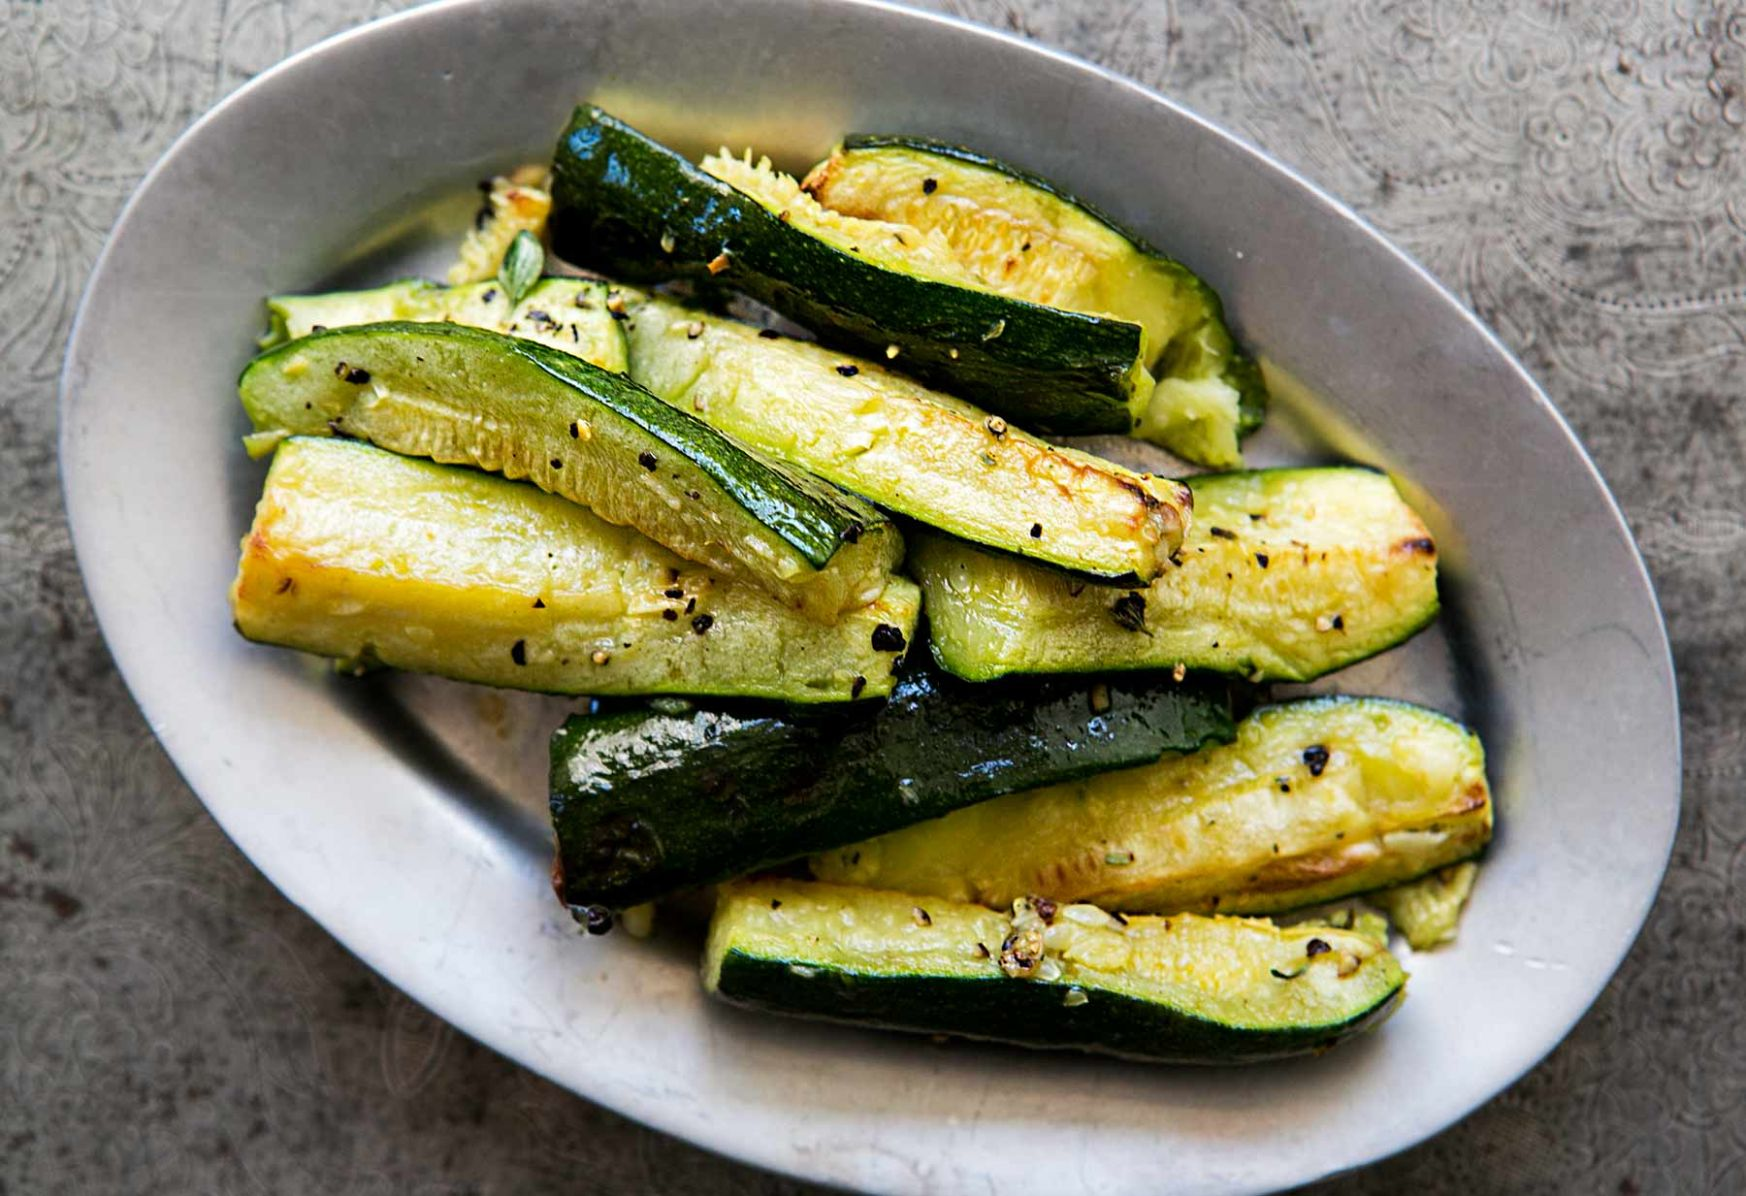 Roasted Zucchini with Garlic - Recipes For Summer Zucchini